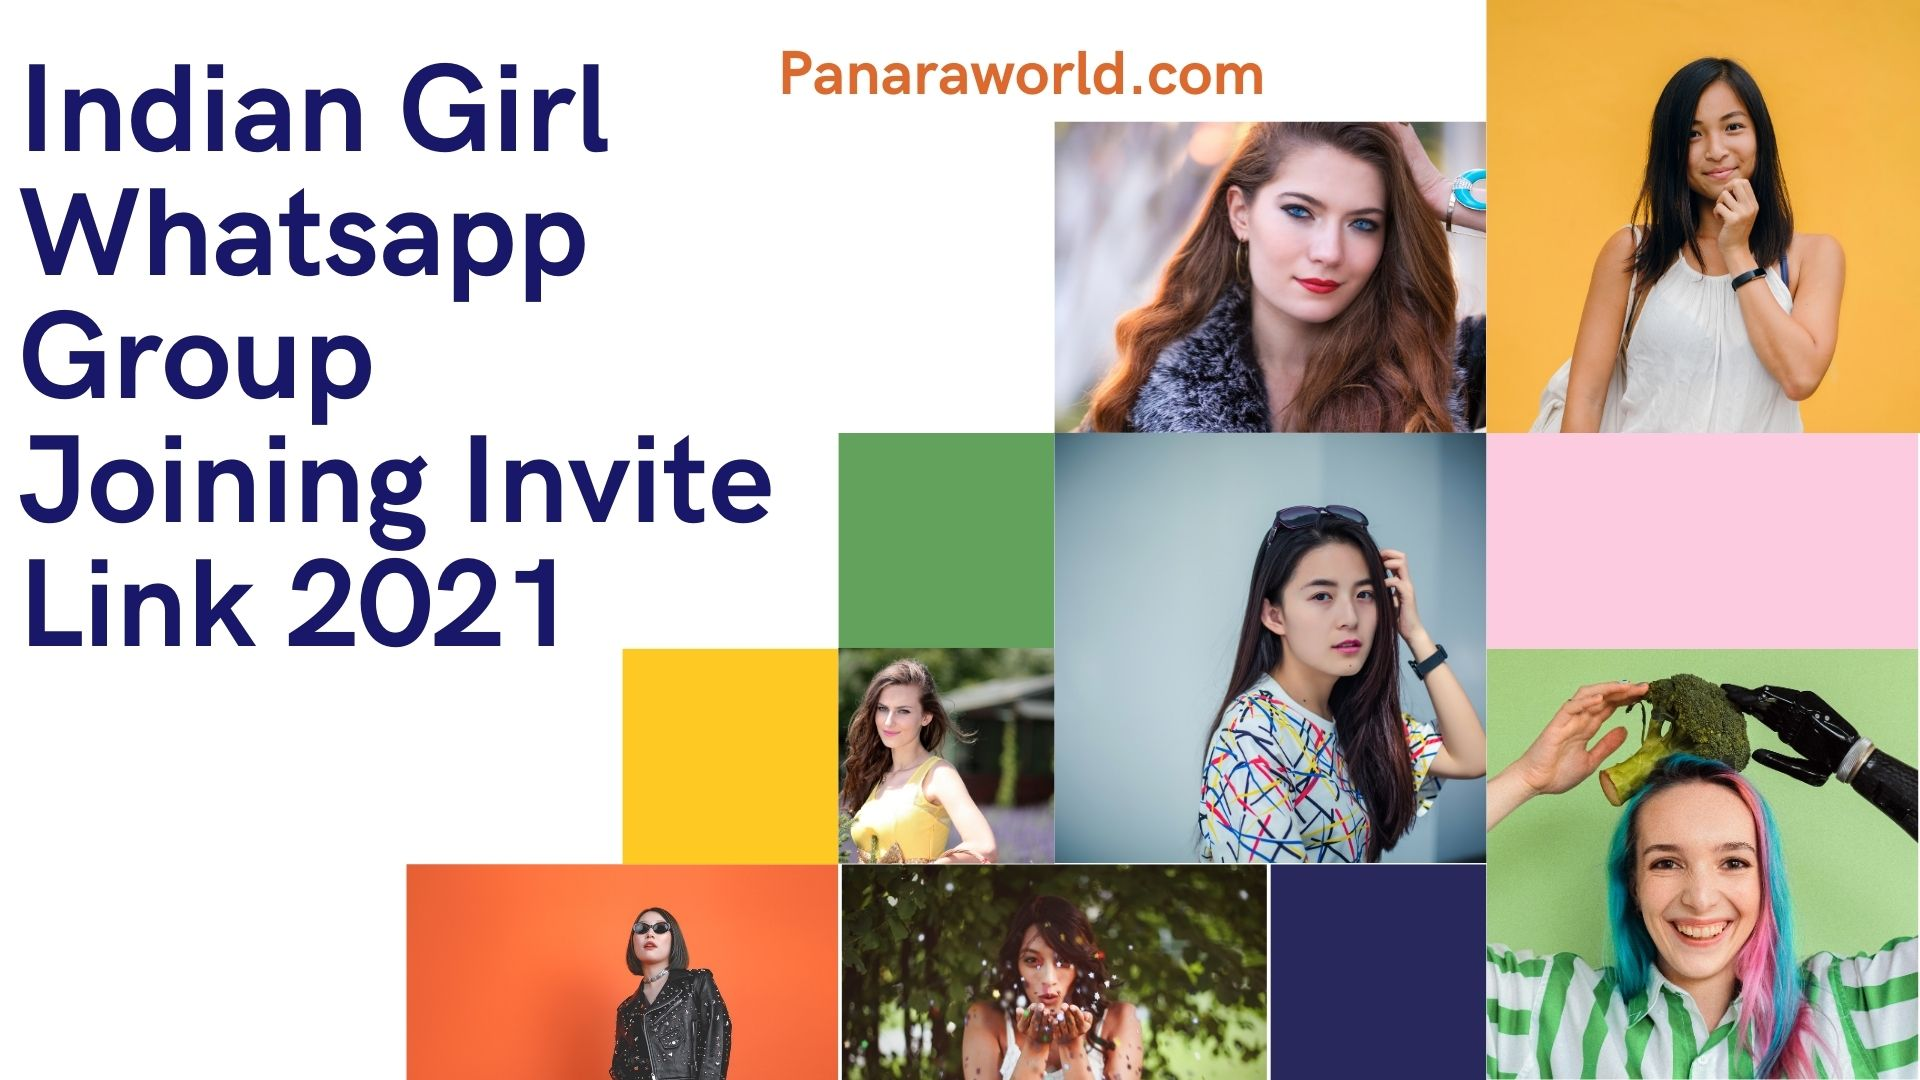 Indian Girl Whatsapp Group Joining Invite Link 2021